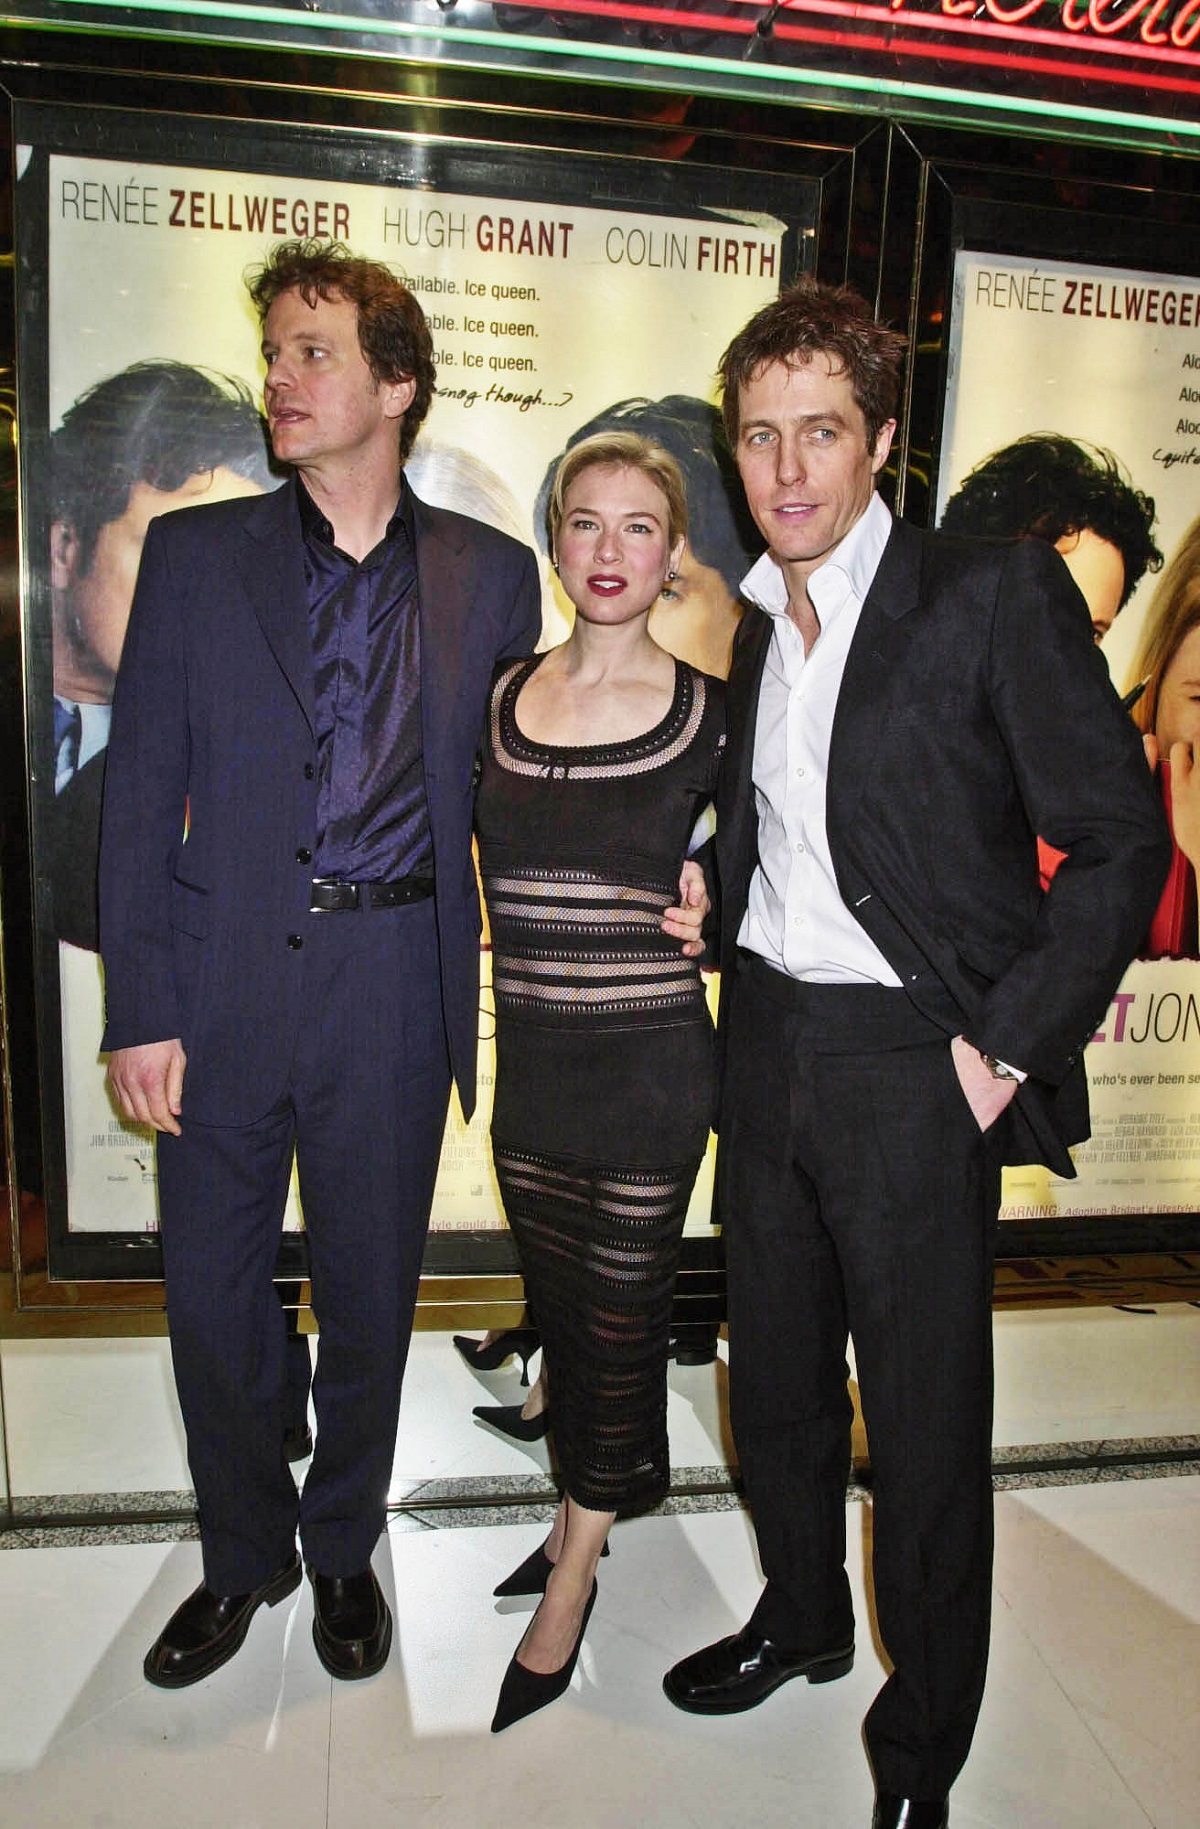 Colin Firth, Renee Zellweger and Hugh Grant